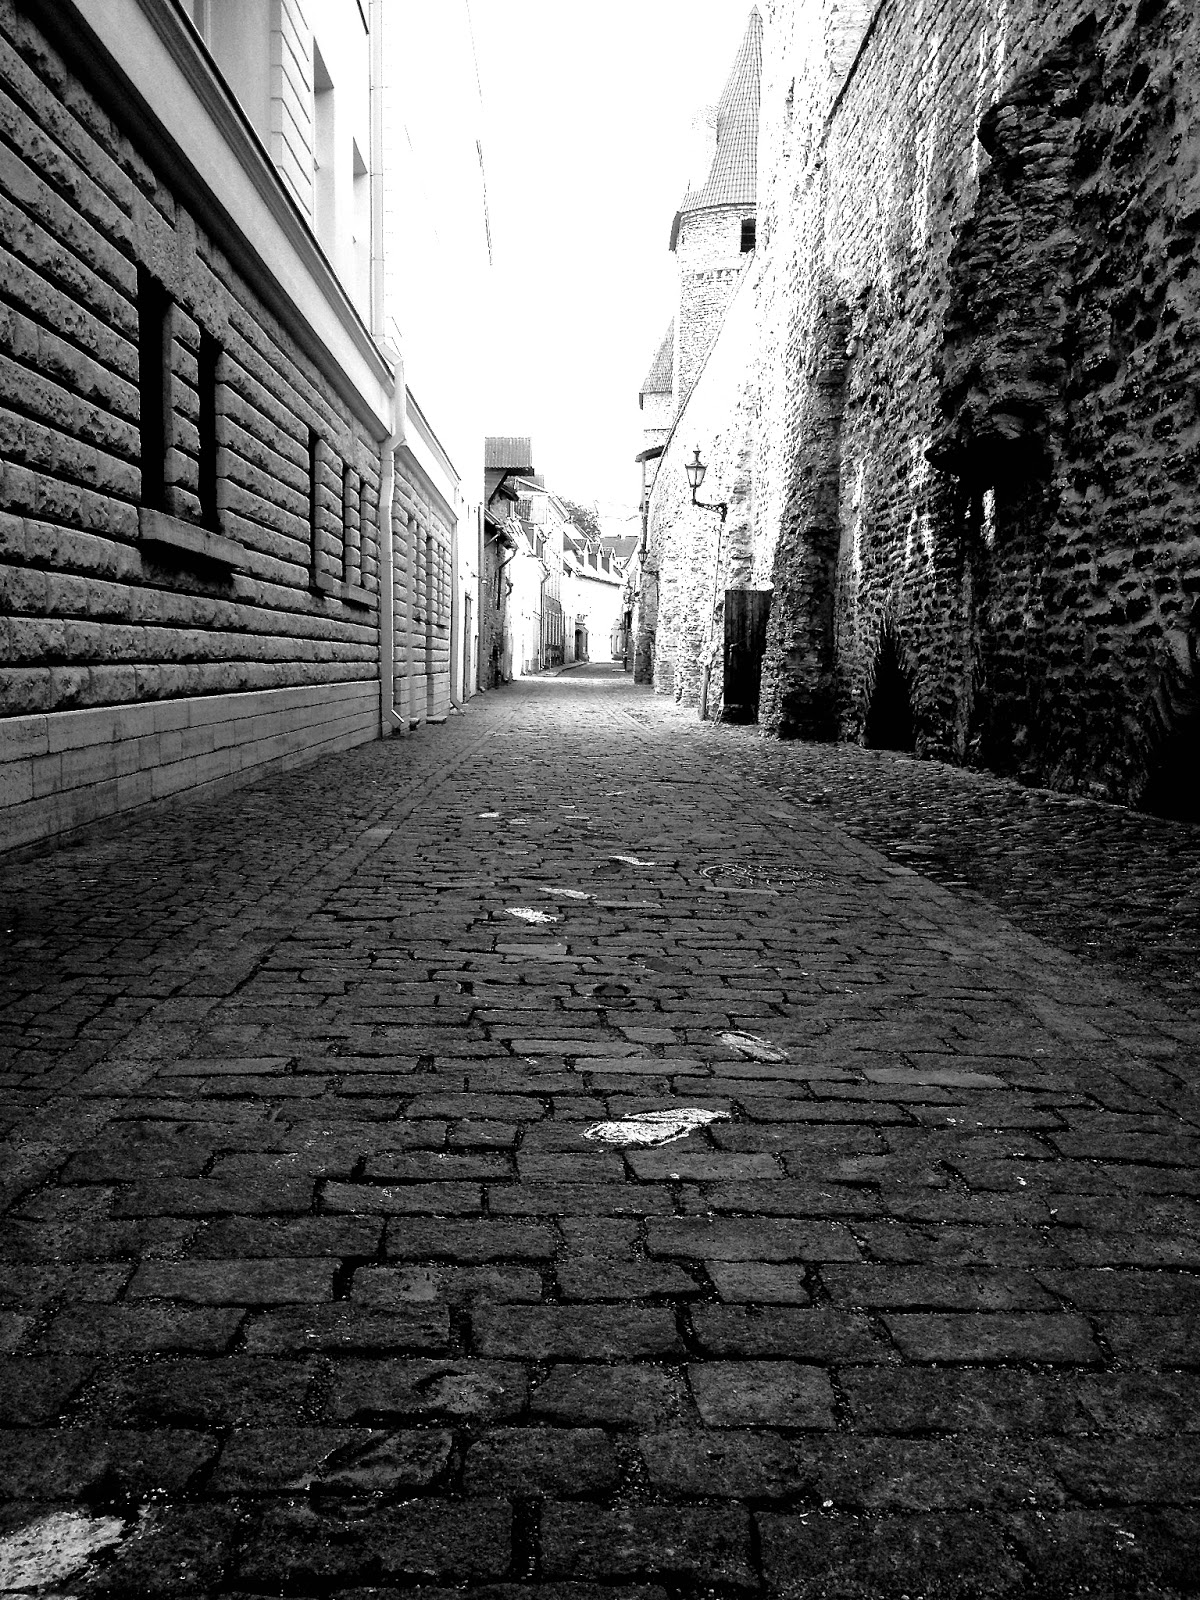 black white memories Tallin London Paris traveling photography www.lexieblush.co.uk